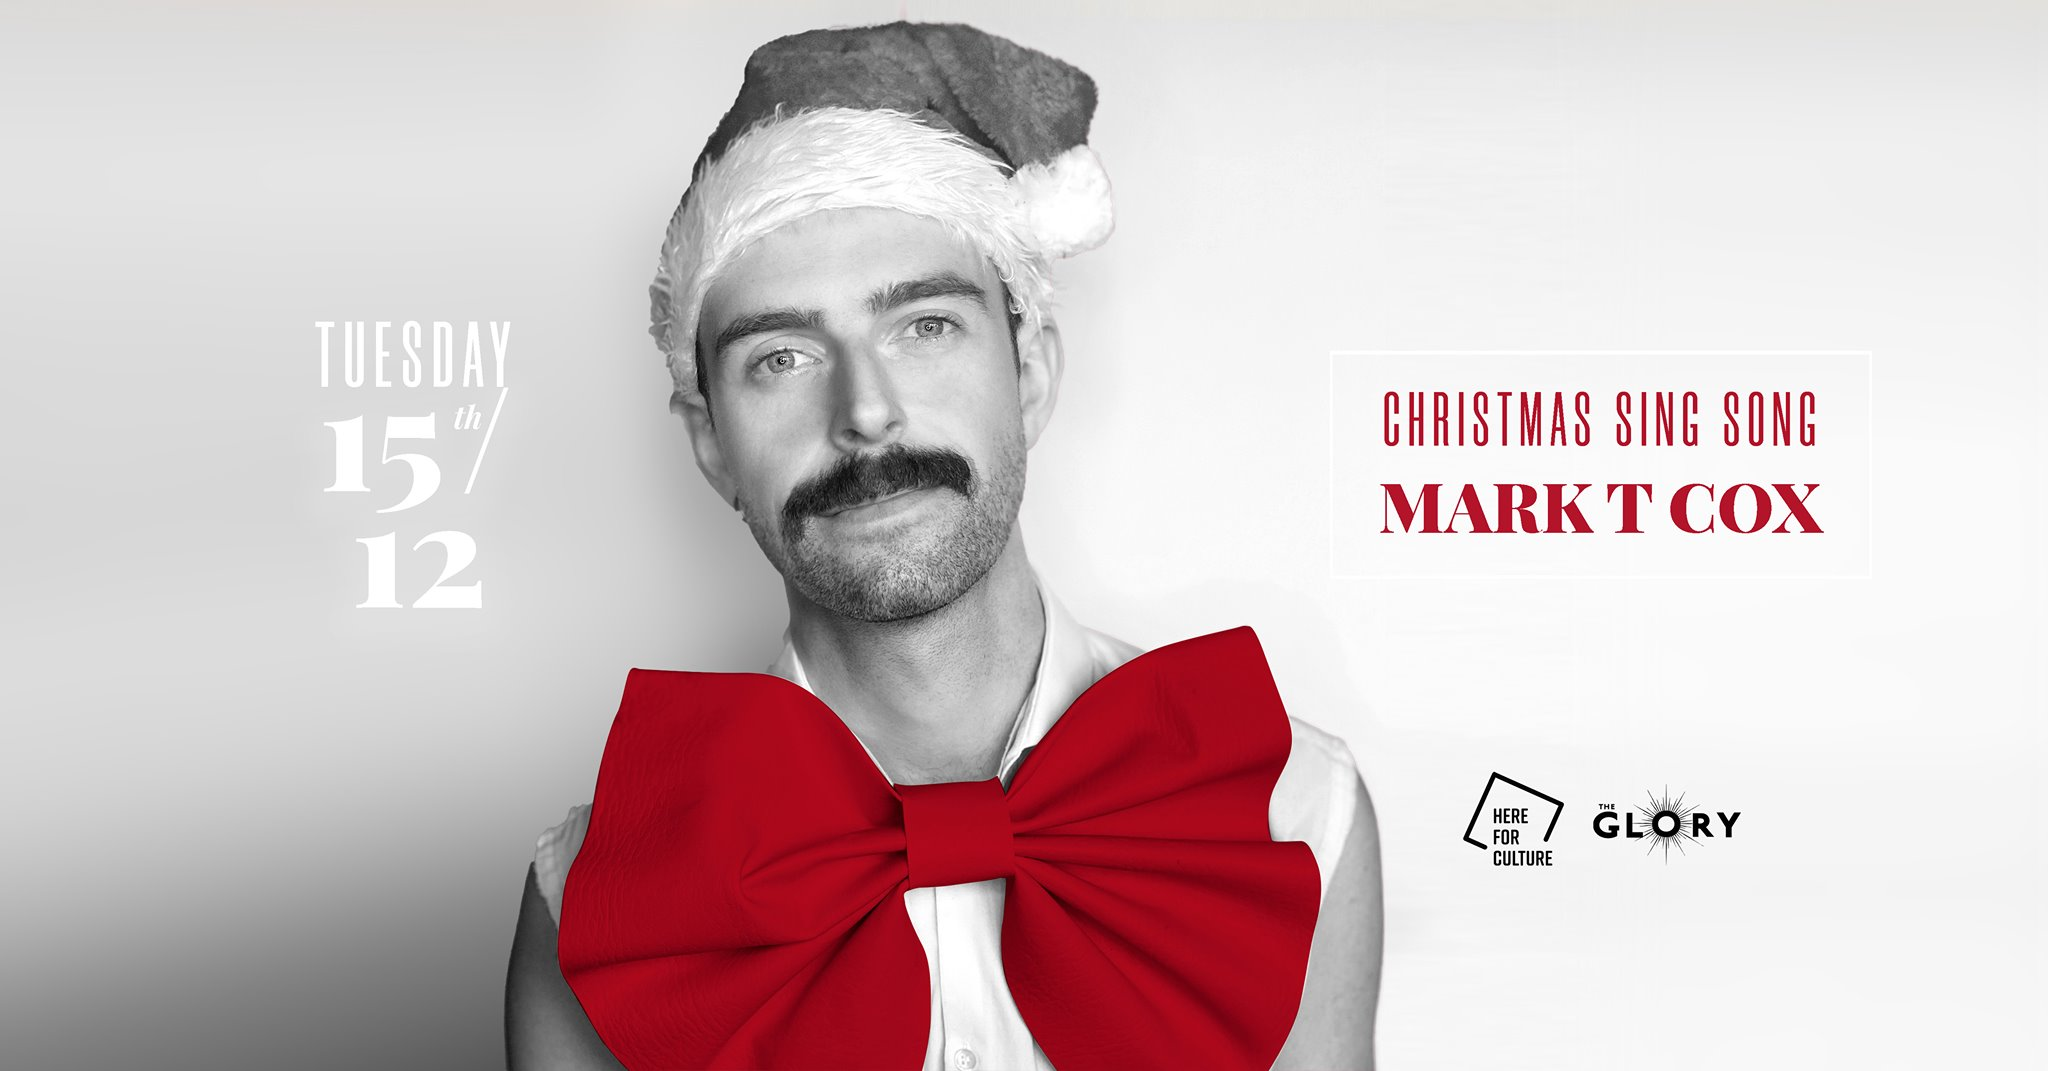 Mark T Cox – Christmas Sing Song